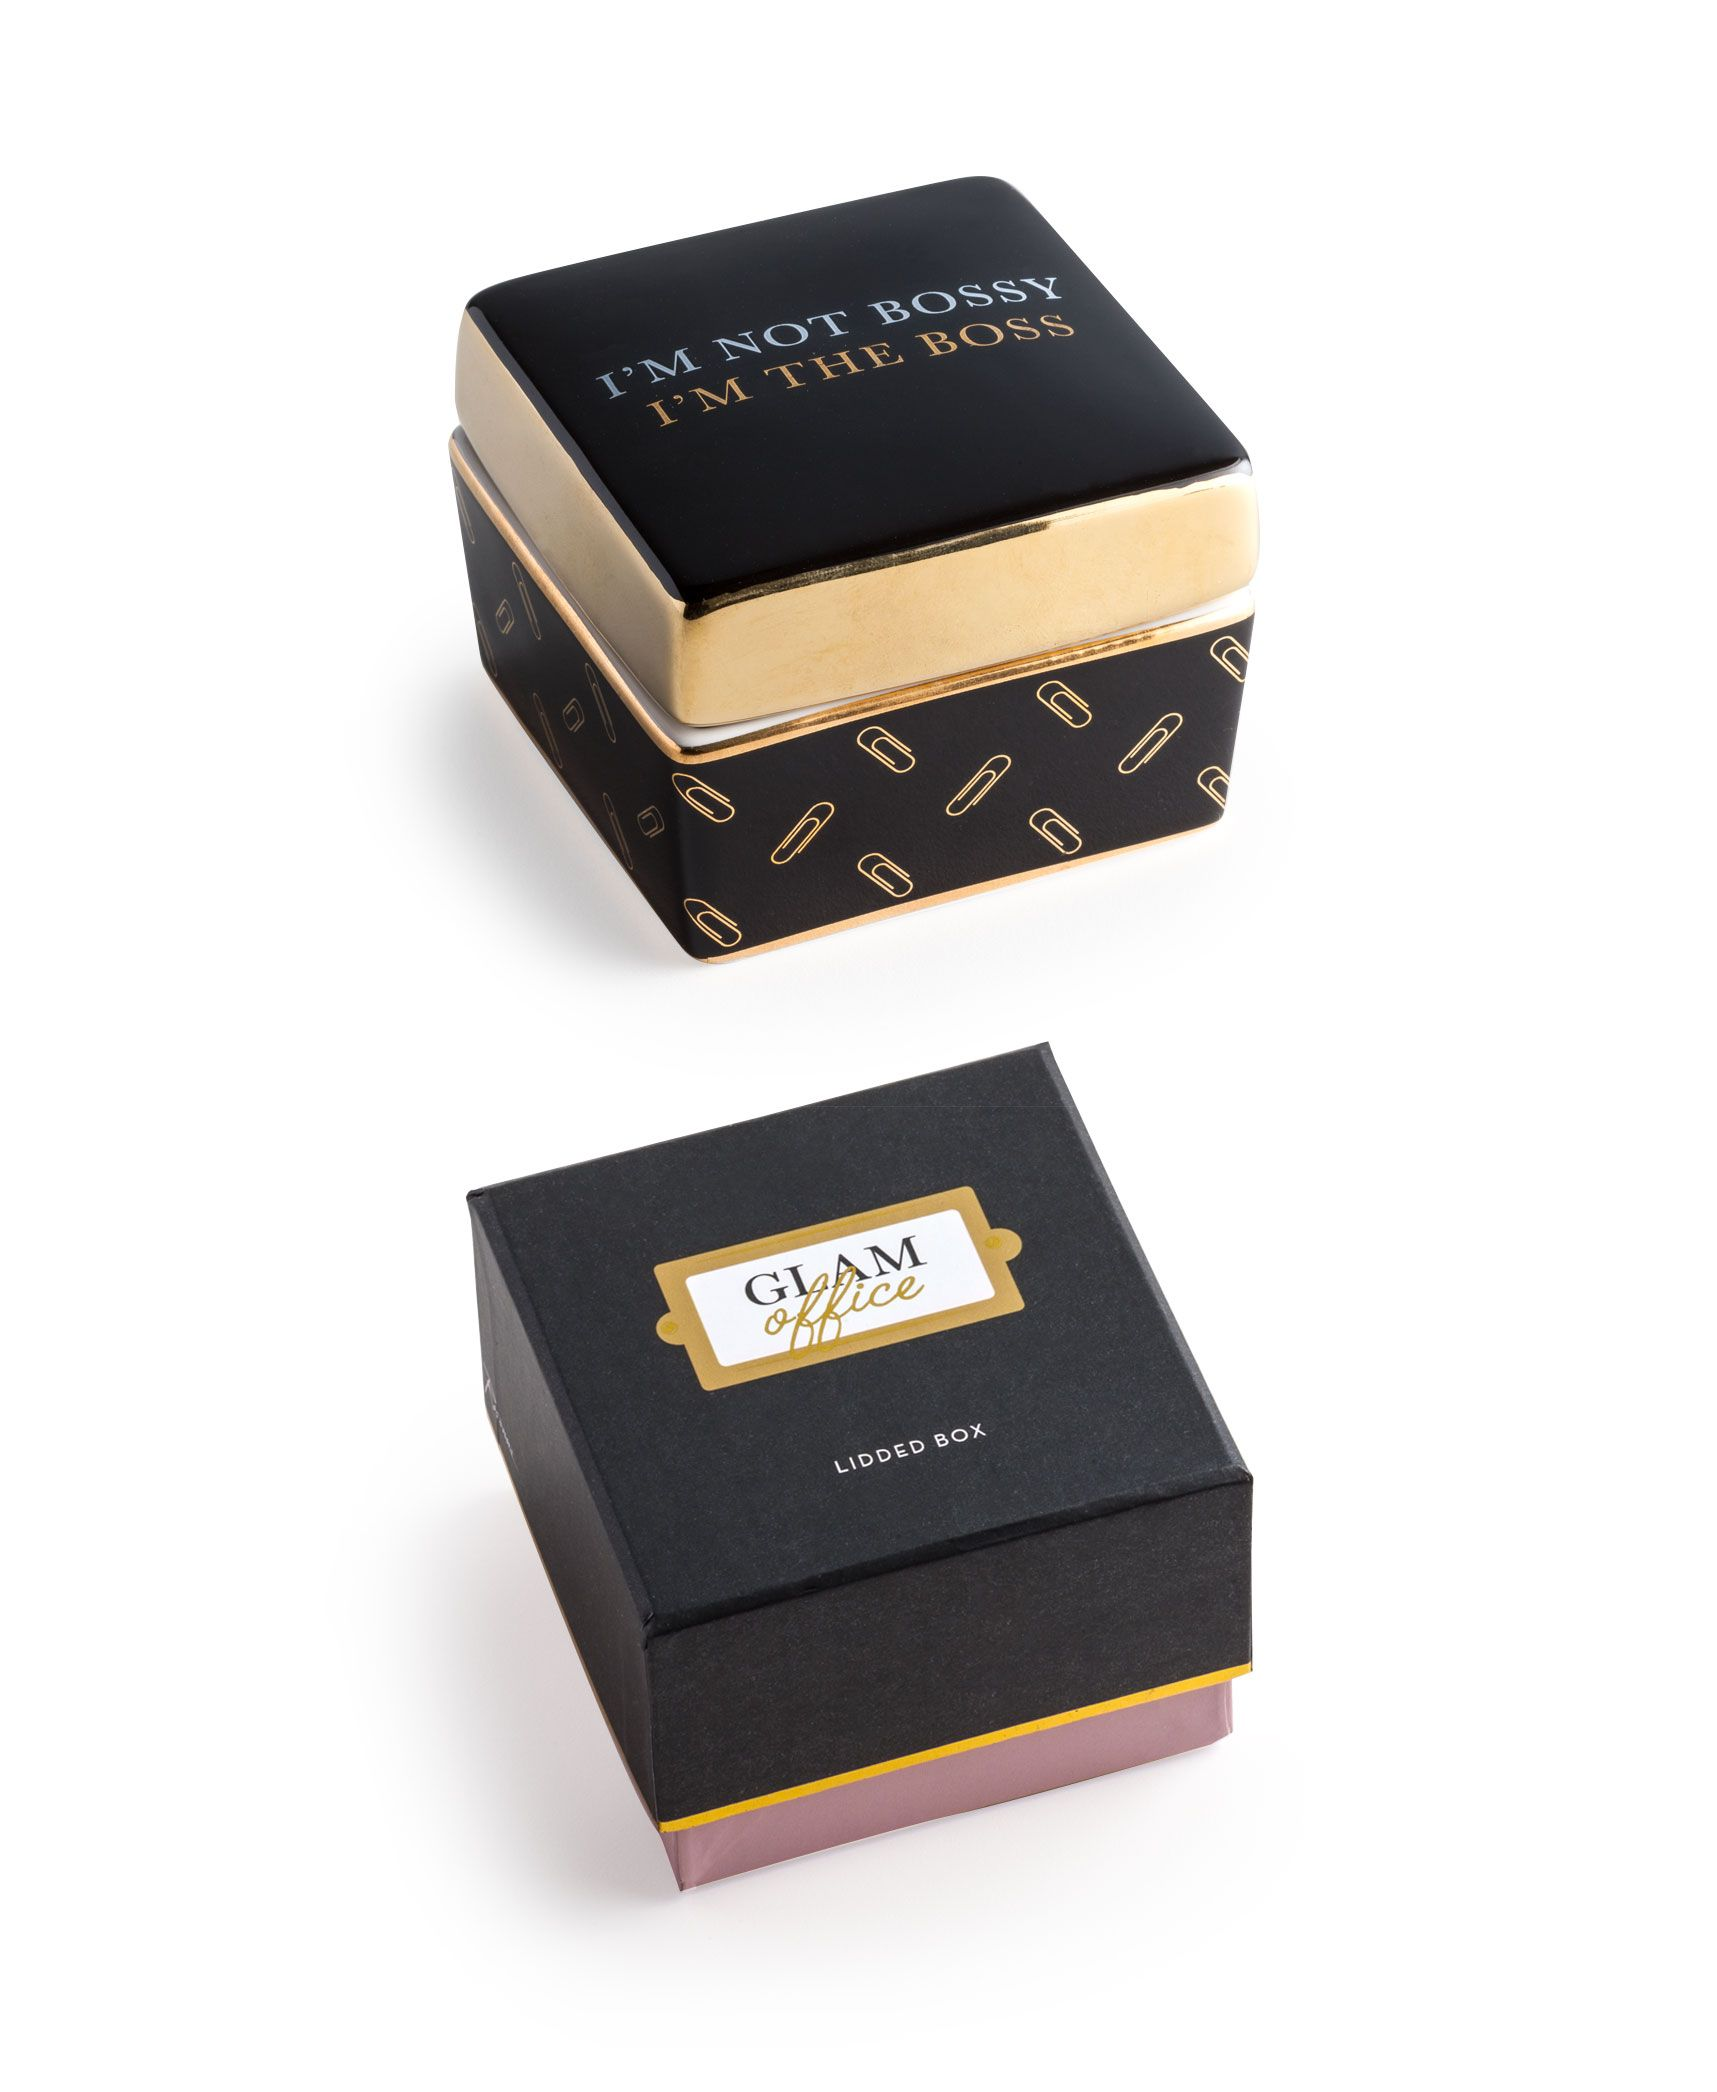 Merveilleux Glam Office Box Iu0027m Not Bossy | Tableware And Home Decor Seattle, WA